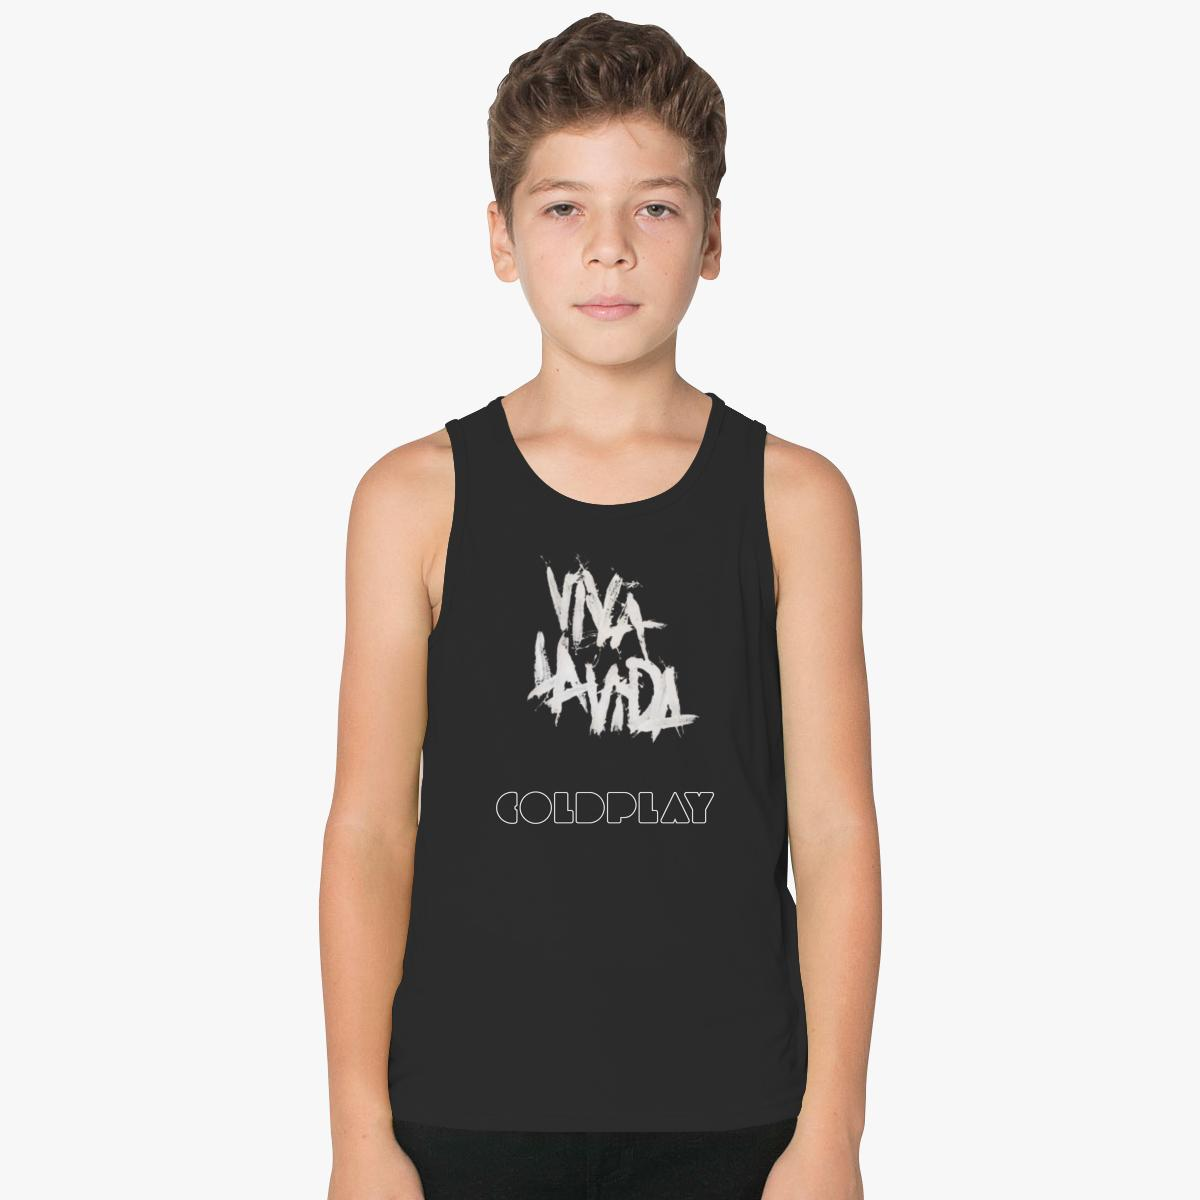 Printed Racerback Top - Cotton 103 by VIDA VIDA